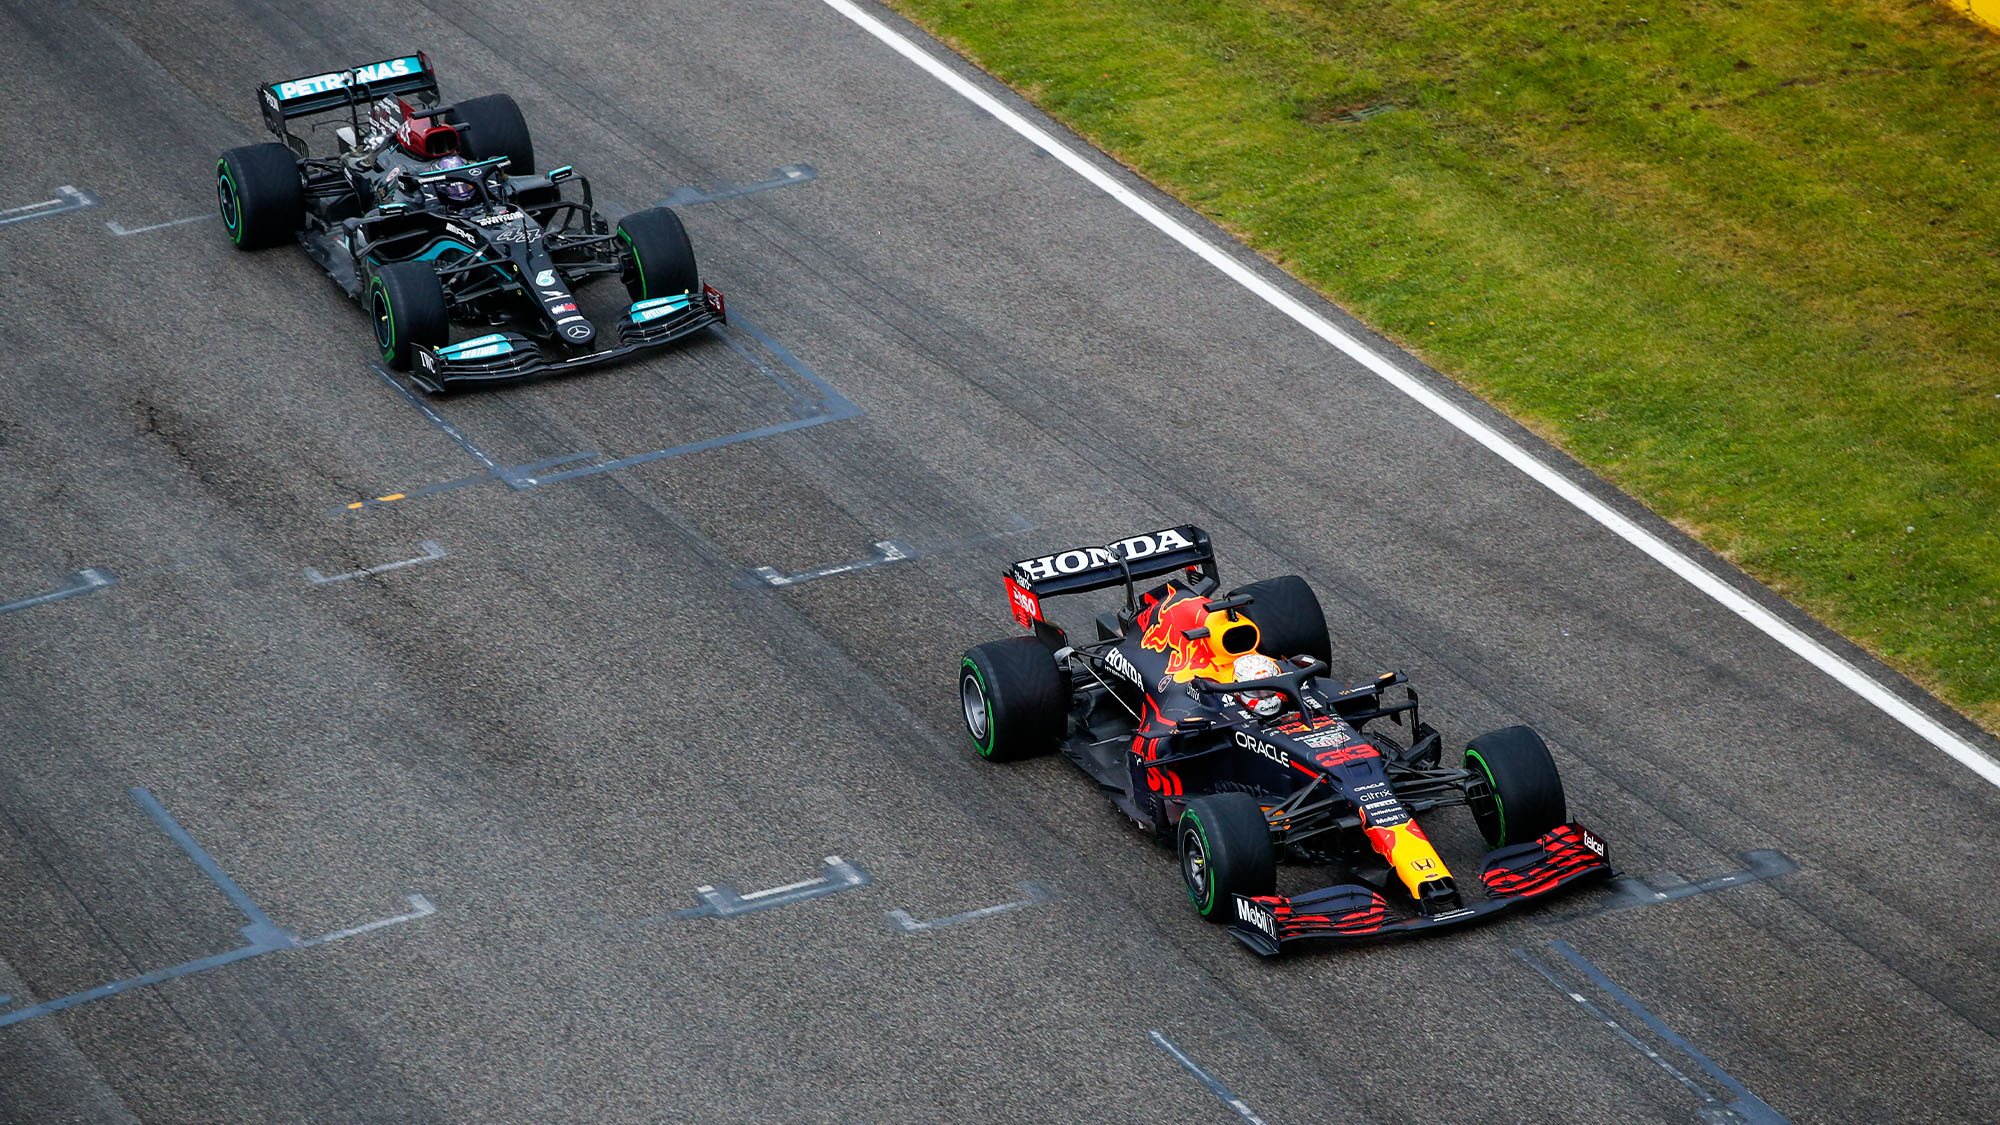 Max Verstappen leads Lewis Hamilton in the 2021 Emilia Romagna Grand Prix